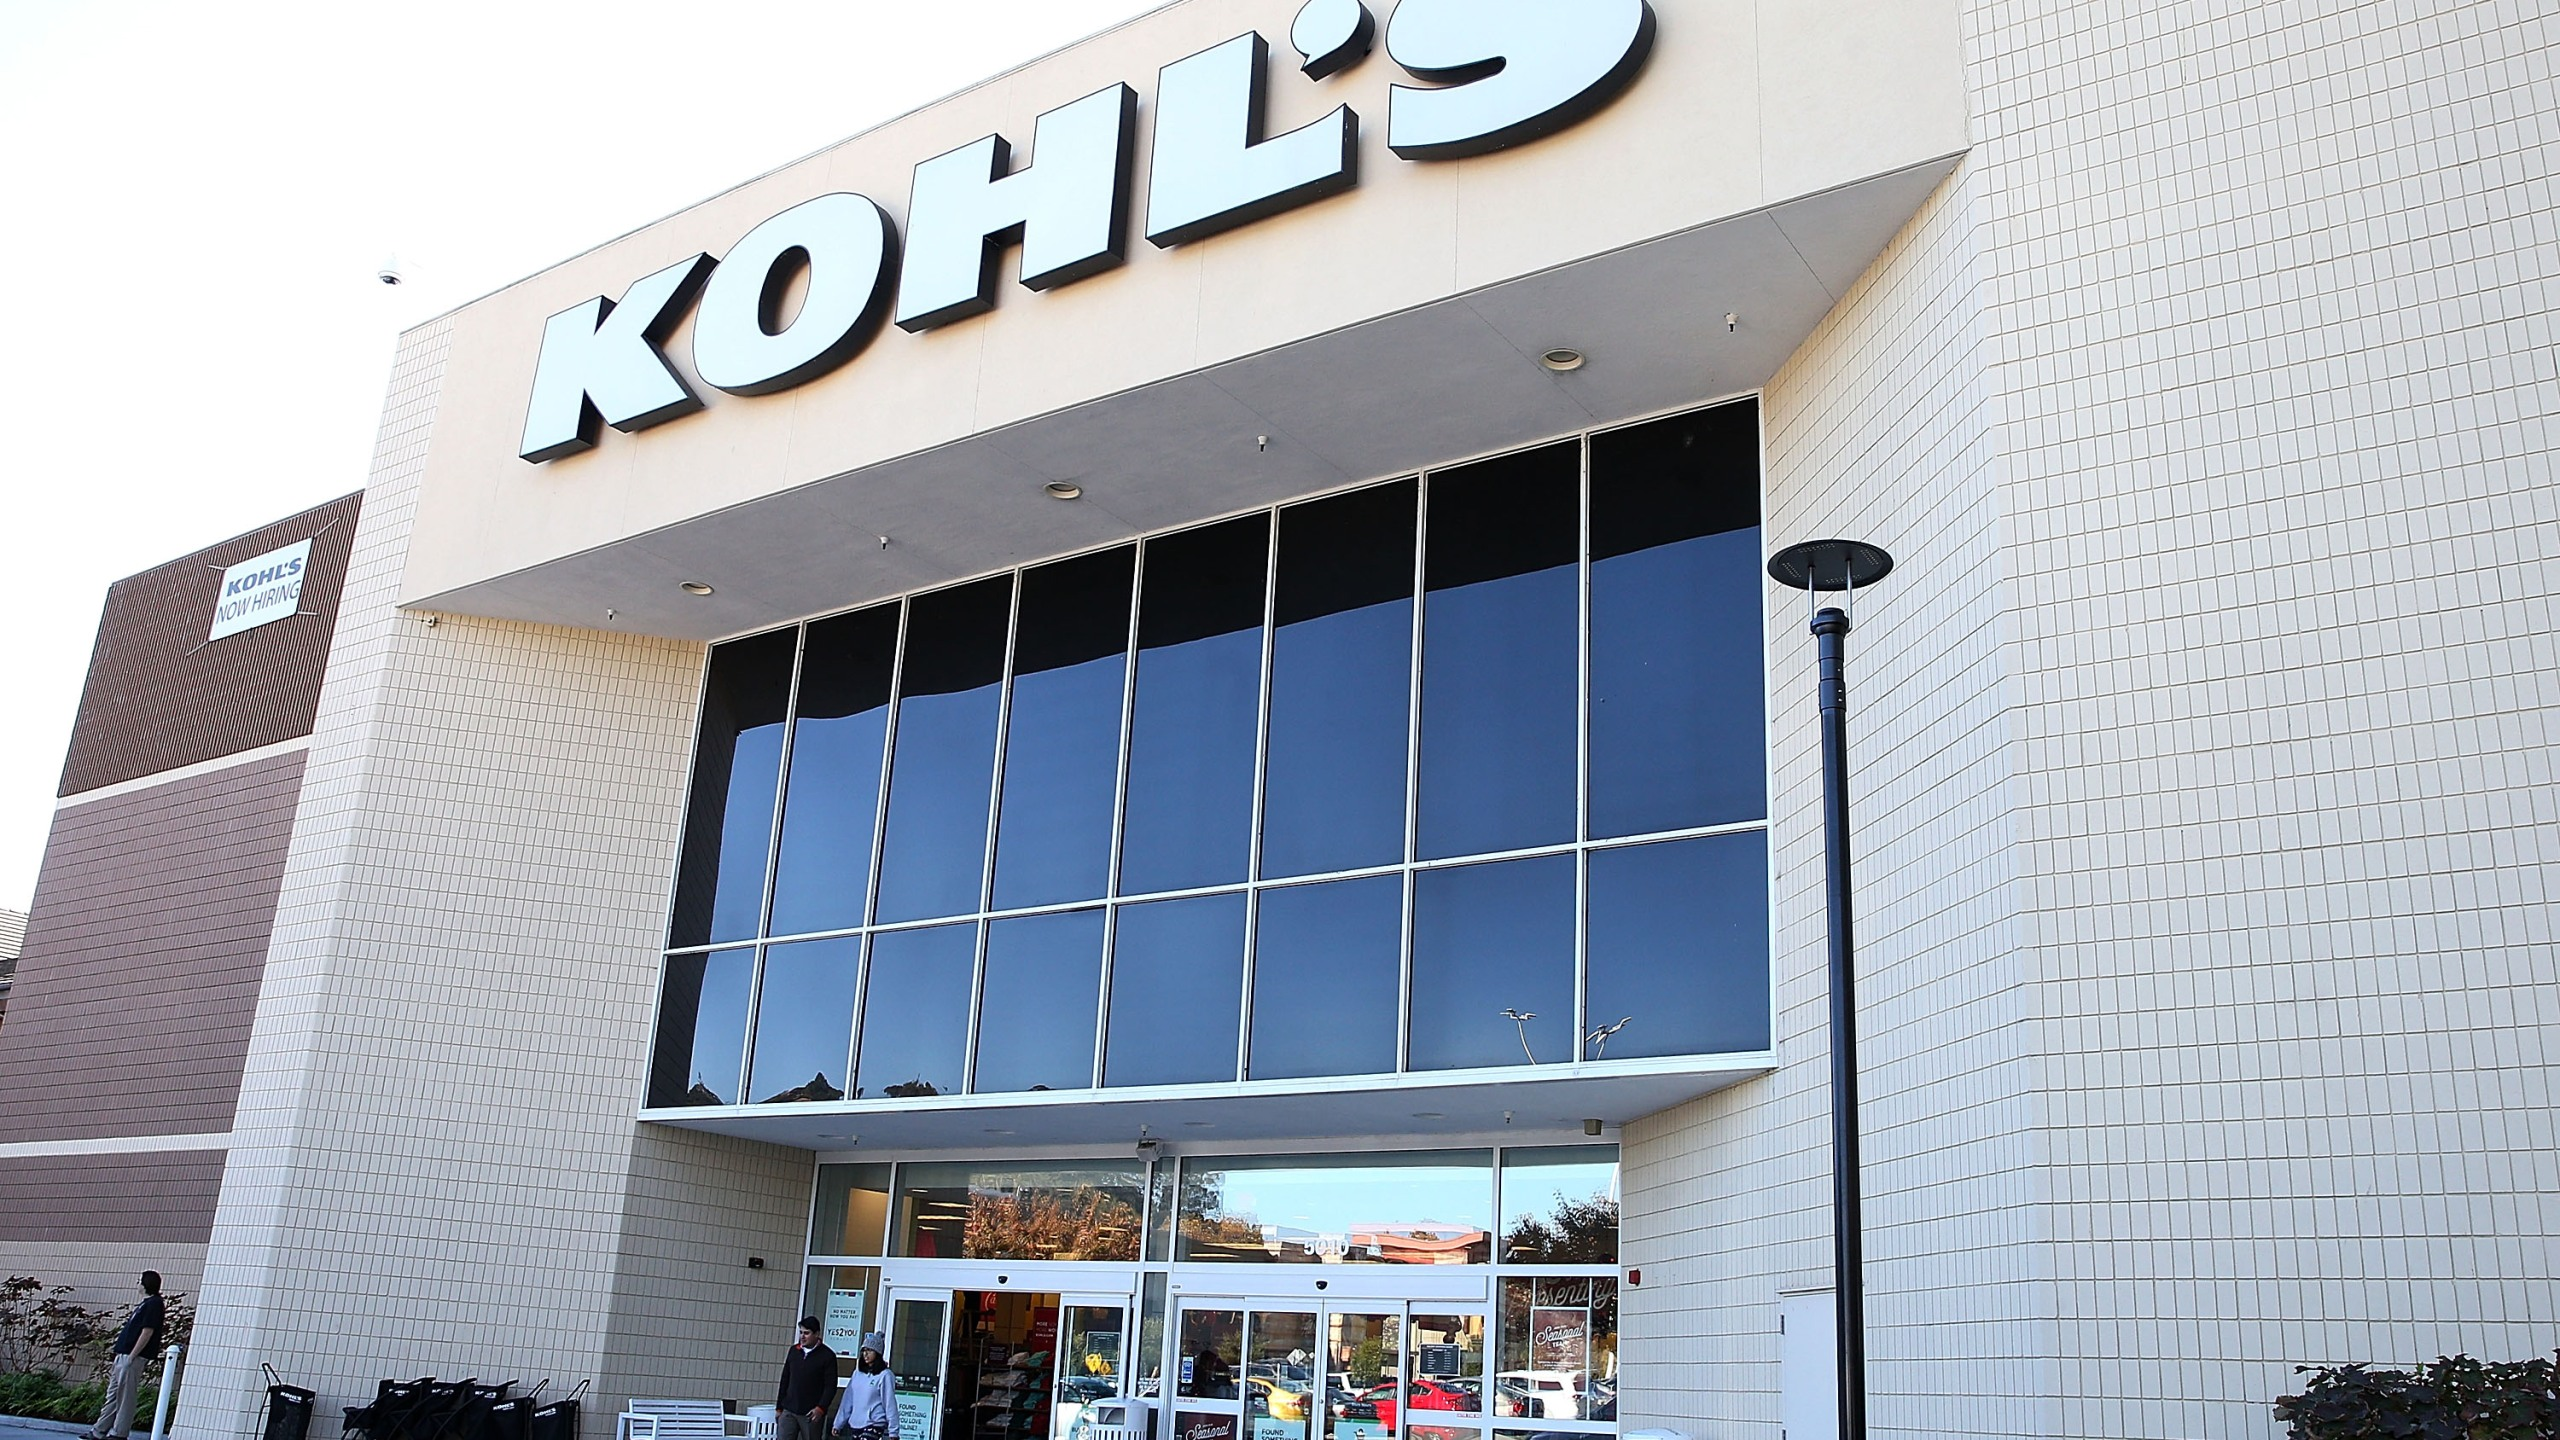 Kohl S Re Opens Stores In Iowa With Reduced Hours Floor Signs Ourquadcities